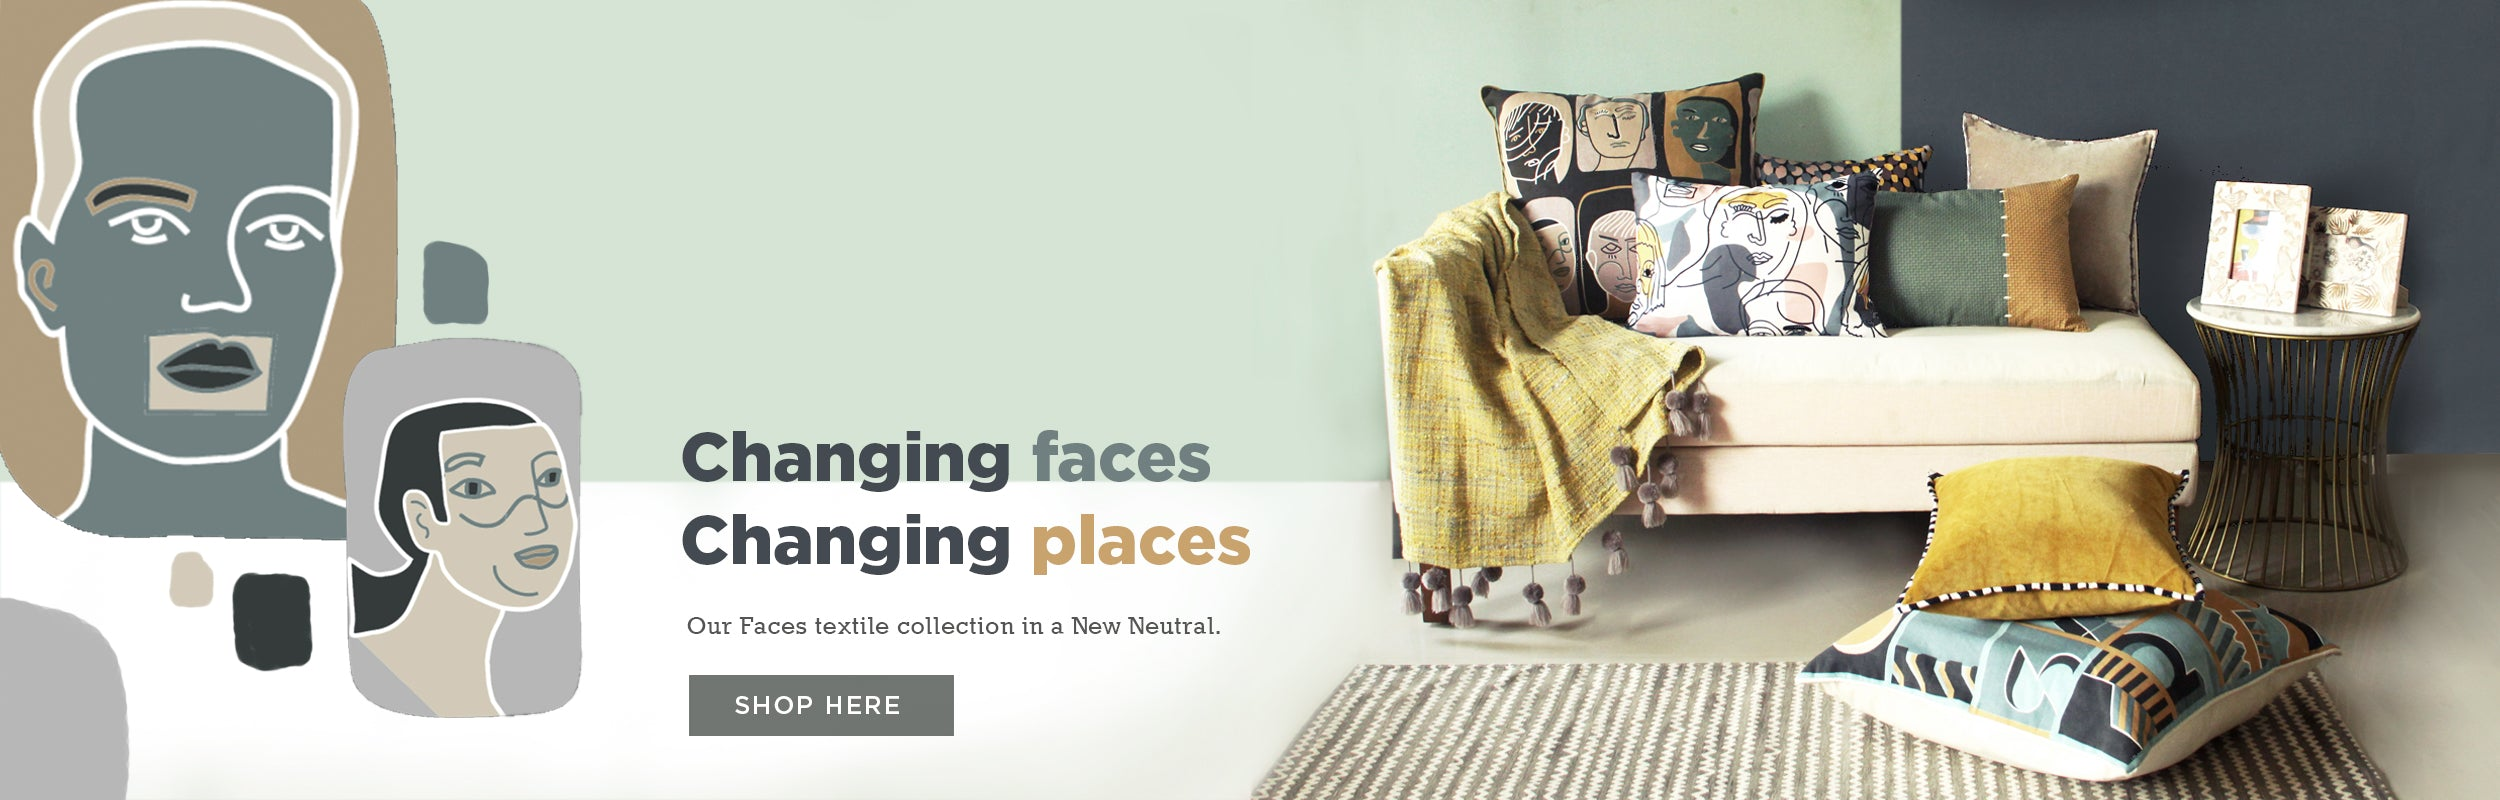 face textile collection